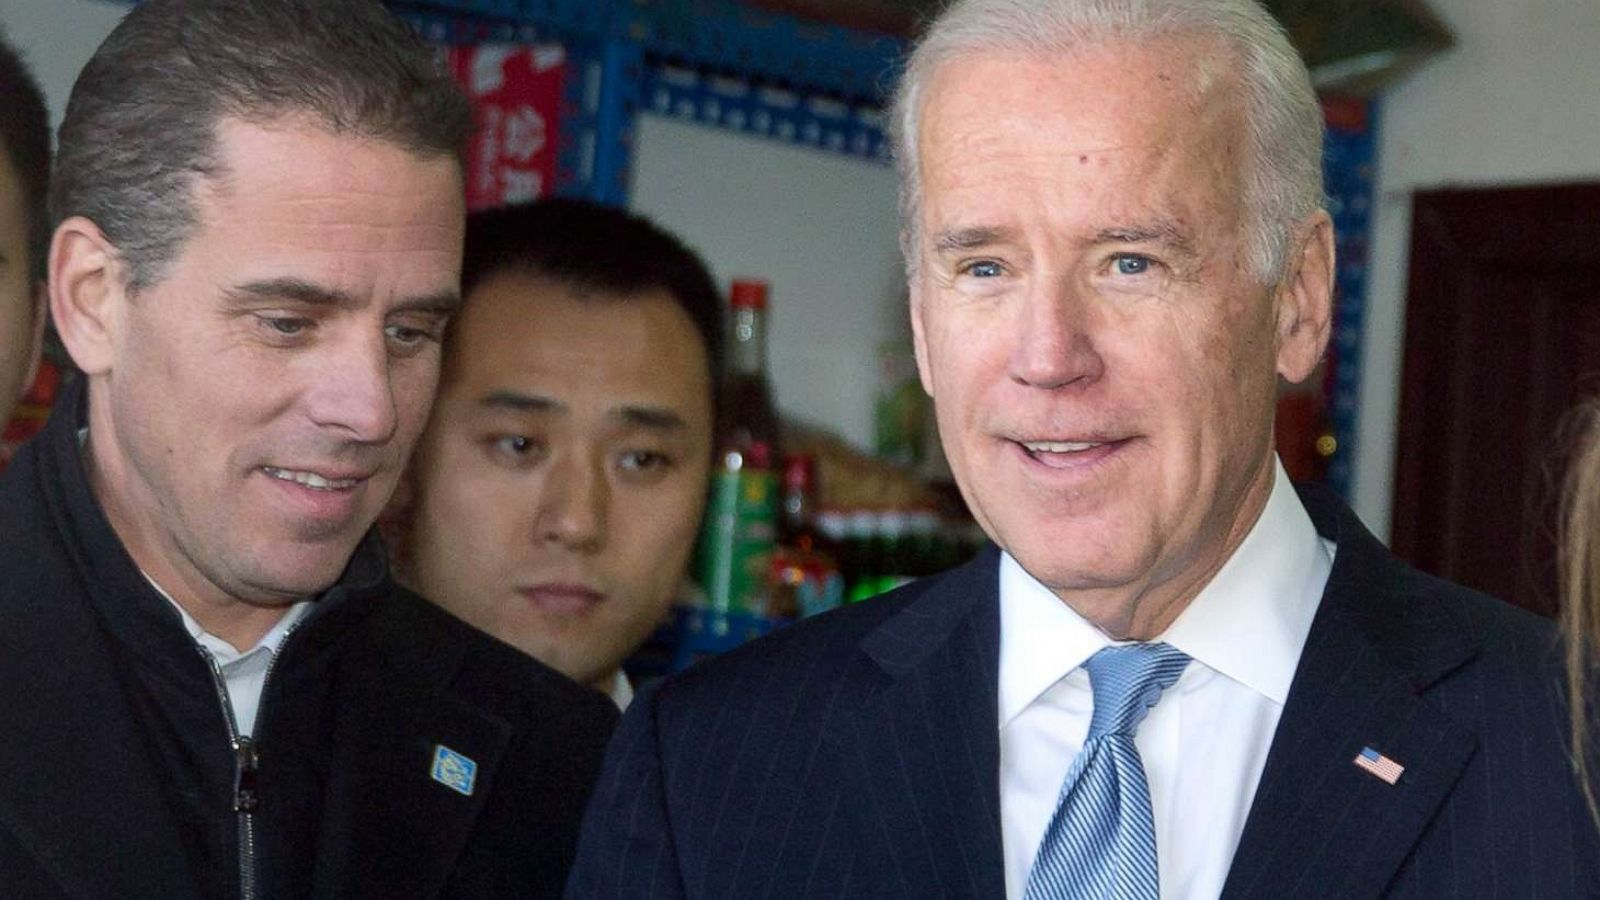 The allegations about Hunter Biden's business dealings in China, explained - ABC News